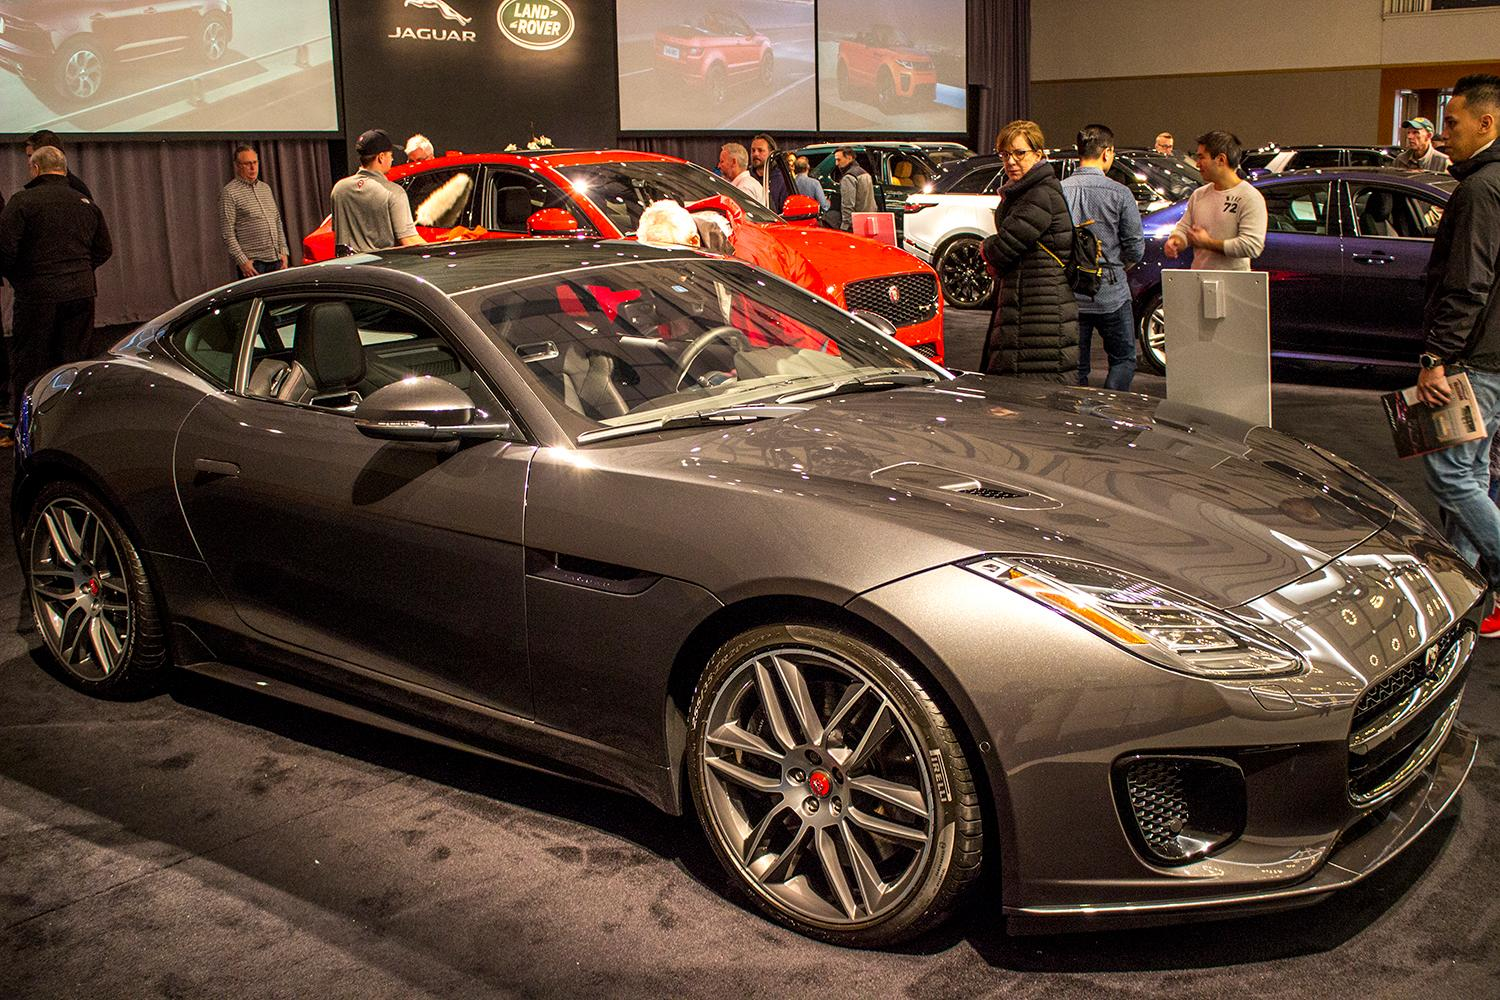 Jaguar F-Type -{&amp;nbsp;}The Portland International Auto Show began at the Oregon Convention Center on Jan. 25, 2018. The event drew prospective buyers and others who enjoyed looking at and comparing vehicles. Photo by Amanda Butt<p></p>